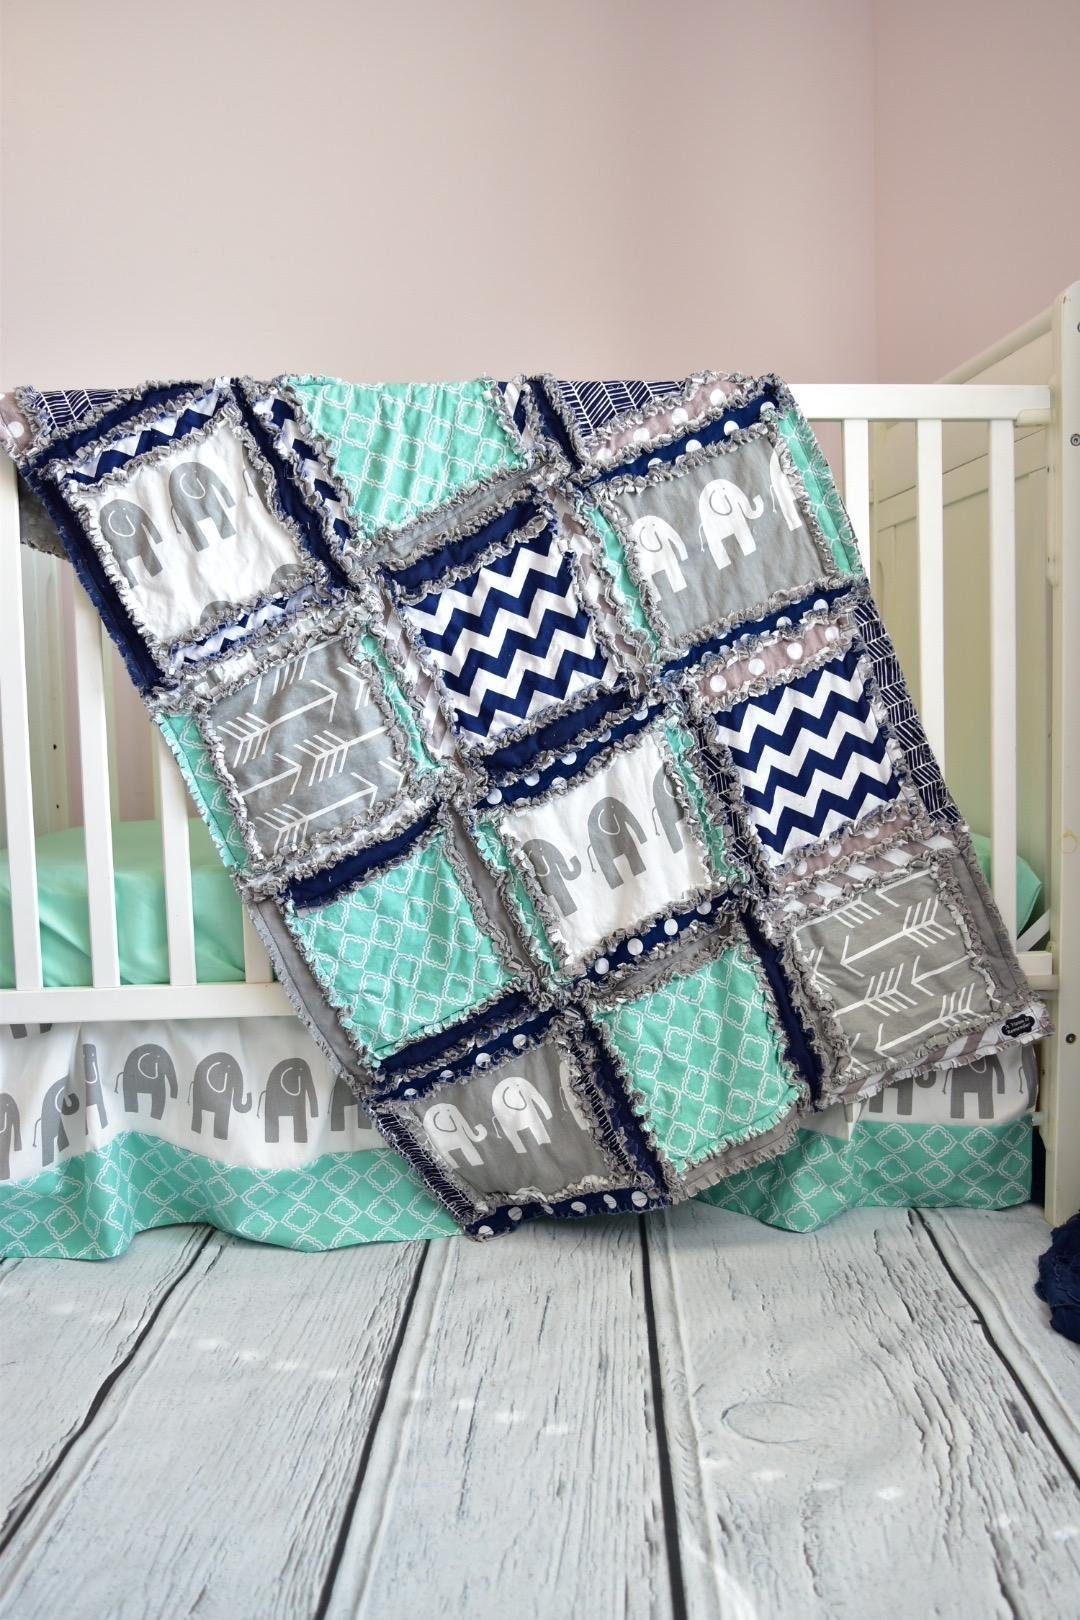 Elephant Crib Set - Mint / Gray / Navy - Safari Baby Bedding with Quilt, Skirt, Sheet